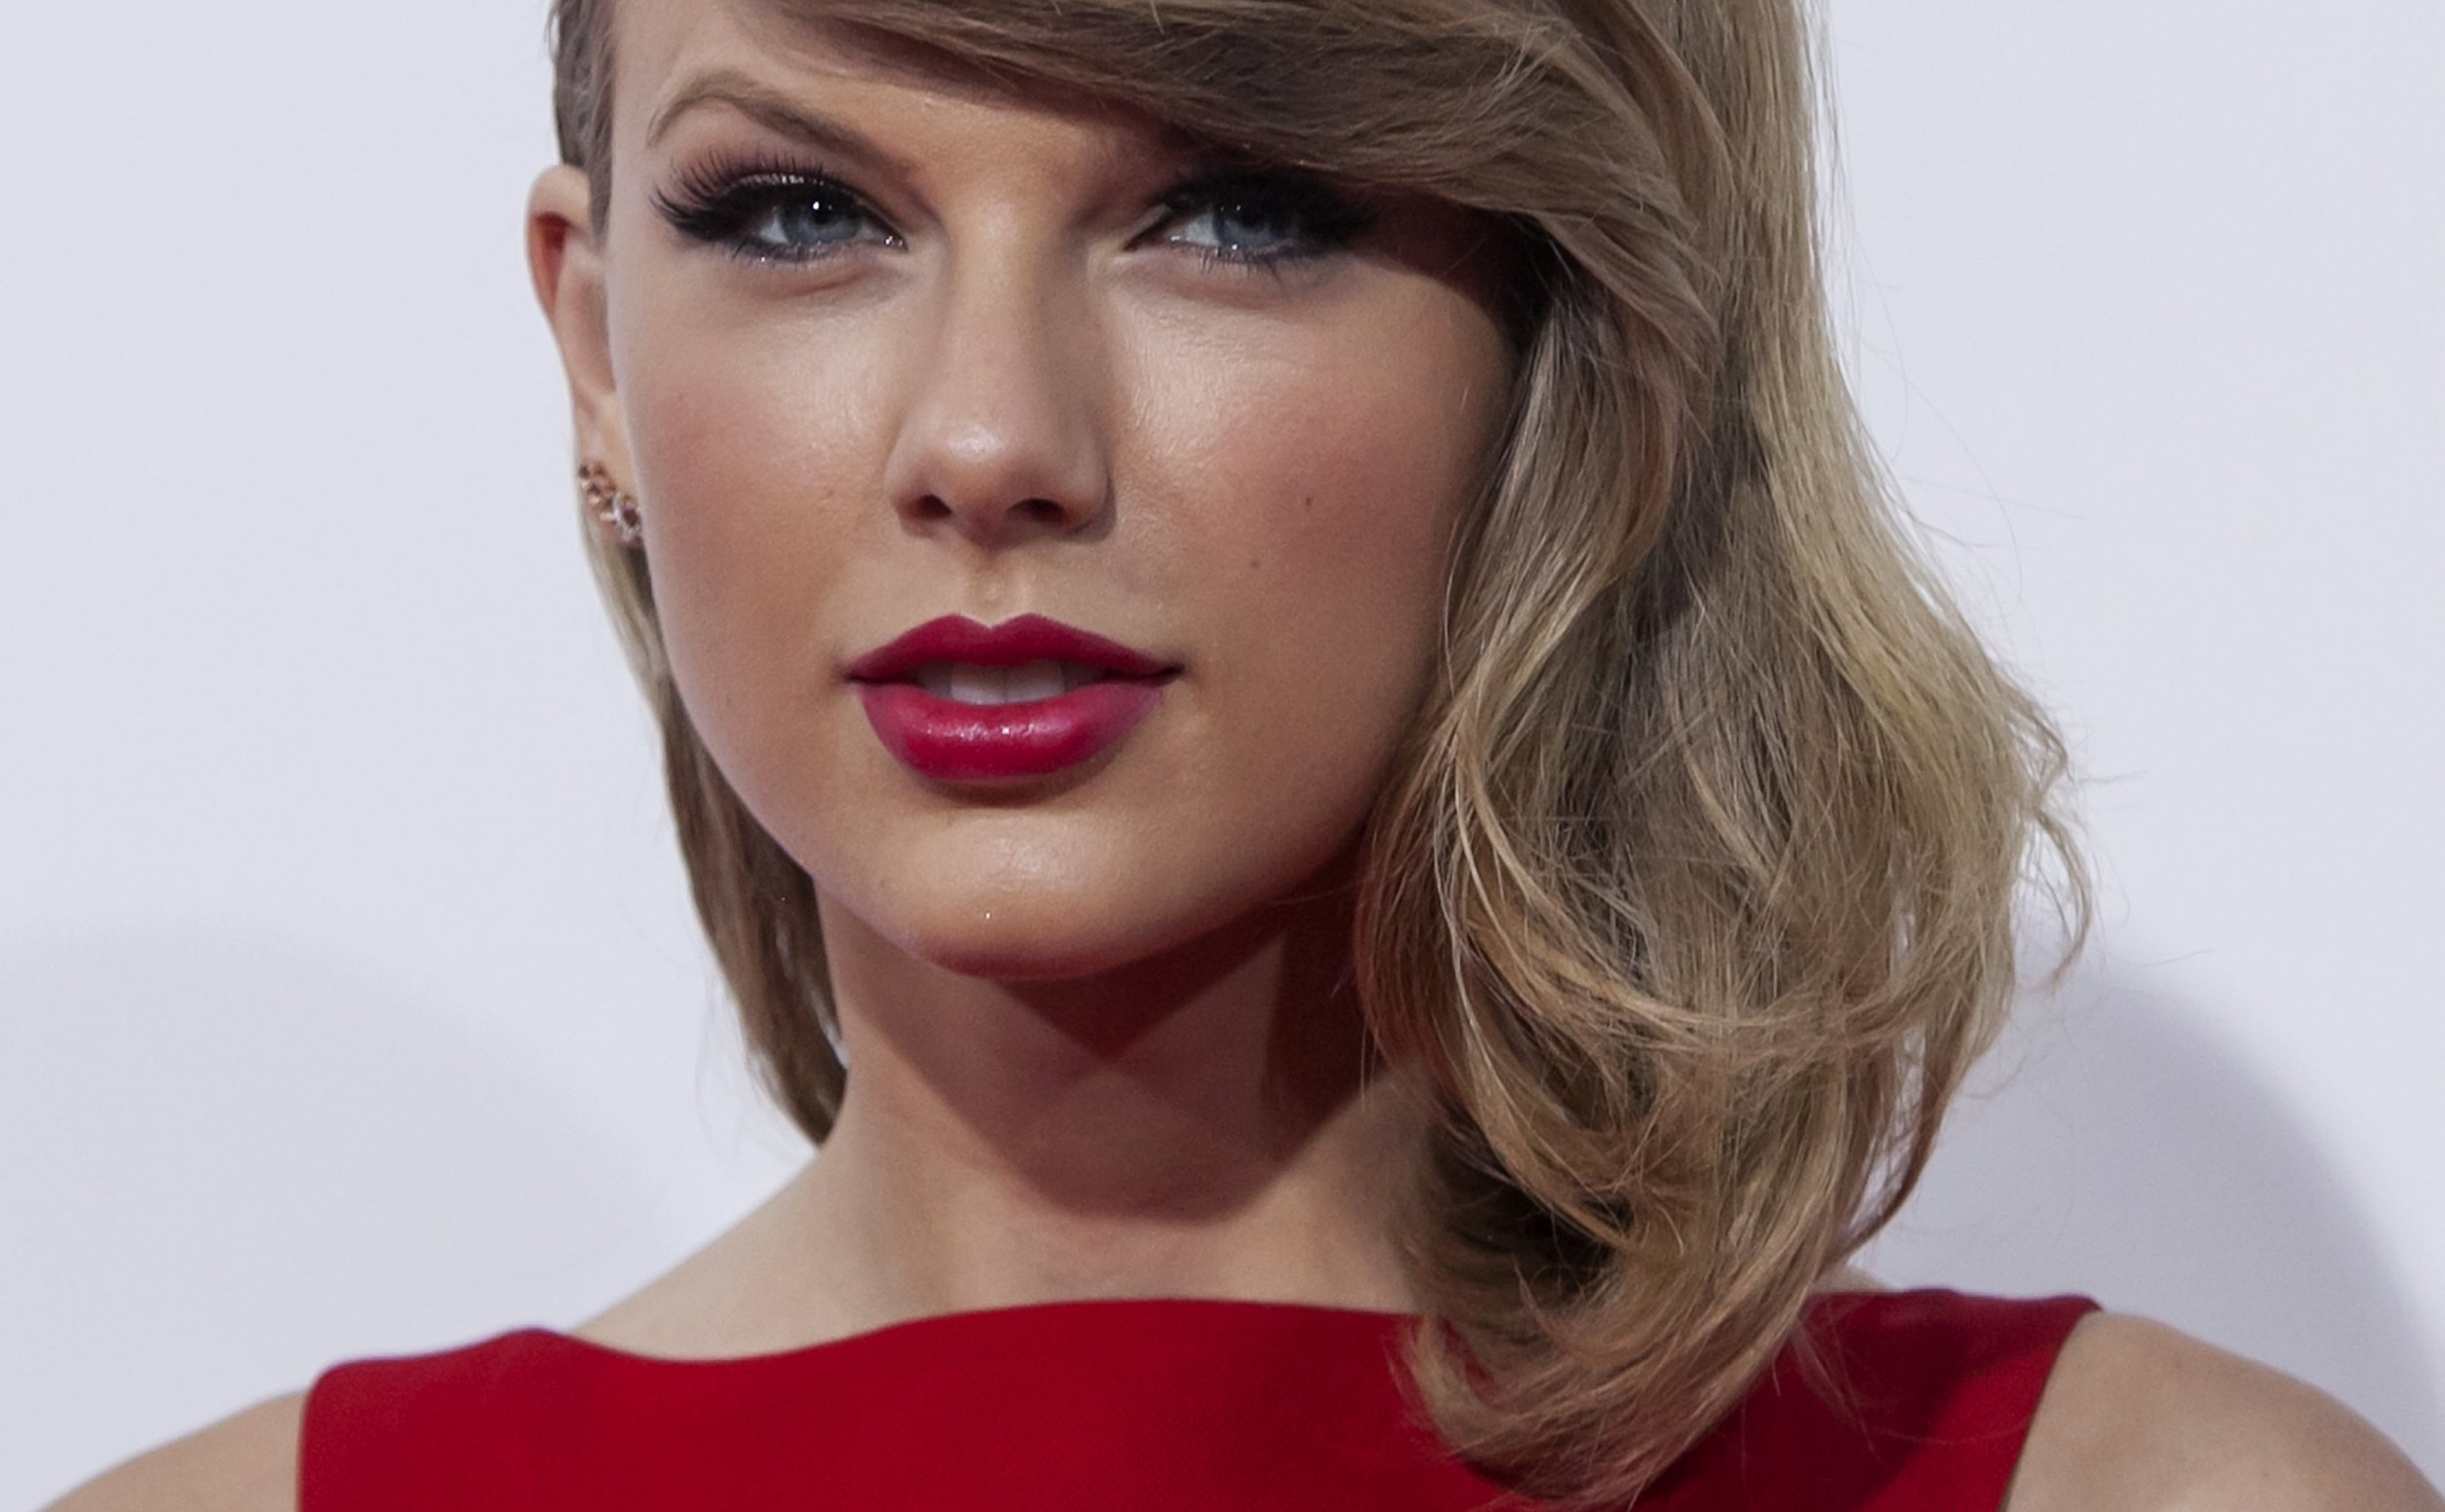 3dc8278c05a Adjectives The New York Times Uses to Describe Taylor Swift's New Album  '1989,' Ranked